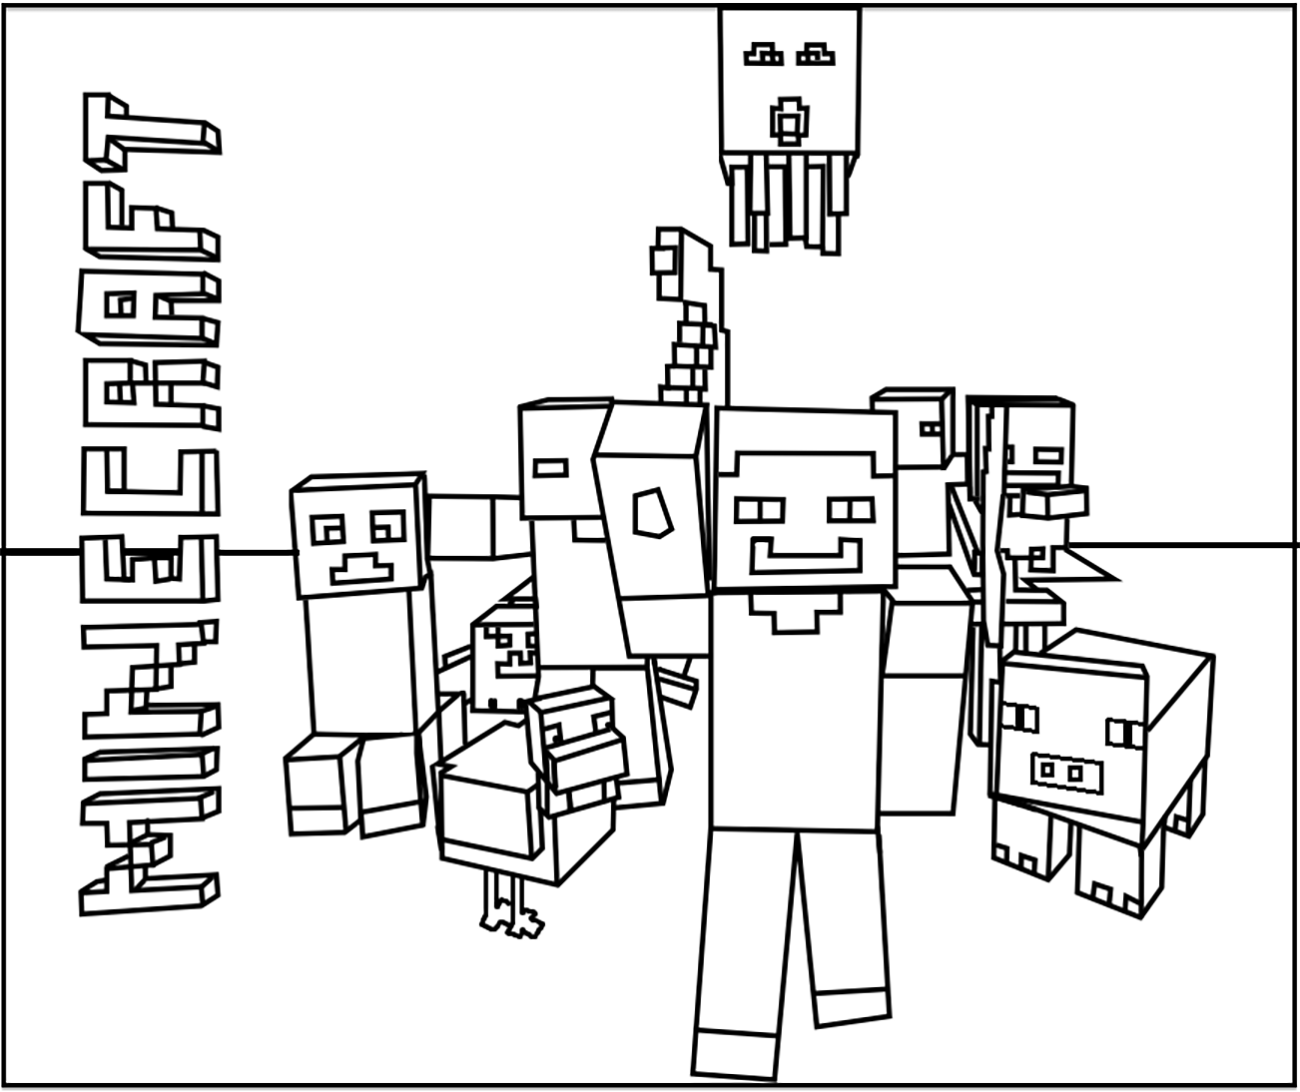 mine craft coloring pages minecraft coloring pages best coloring pages for kids coloring pages mine craft